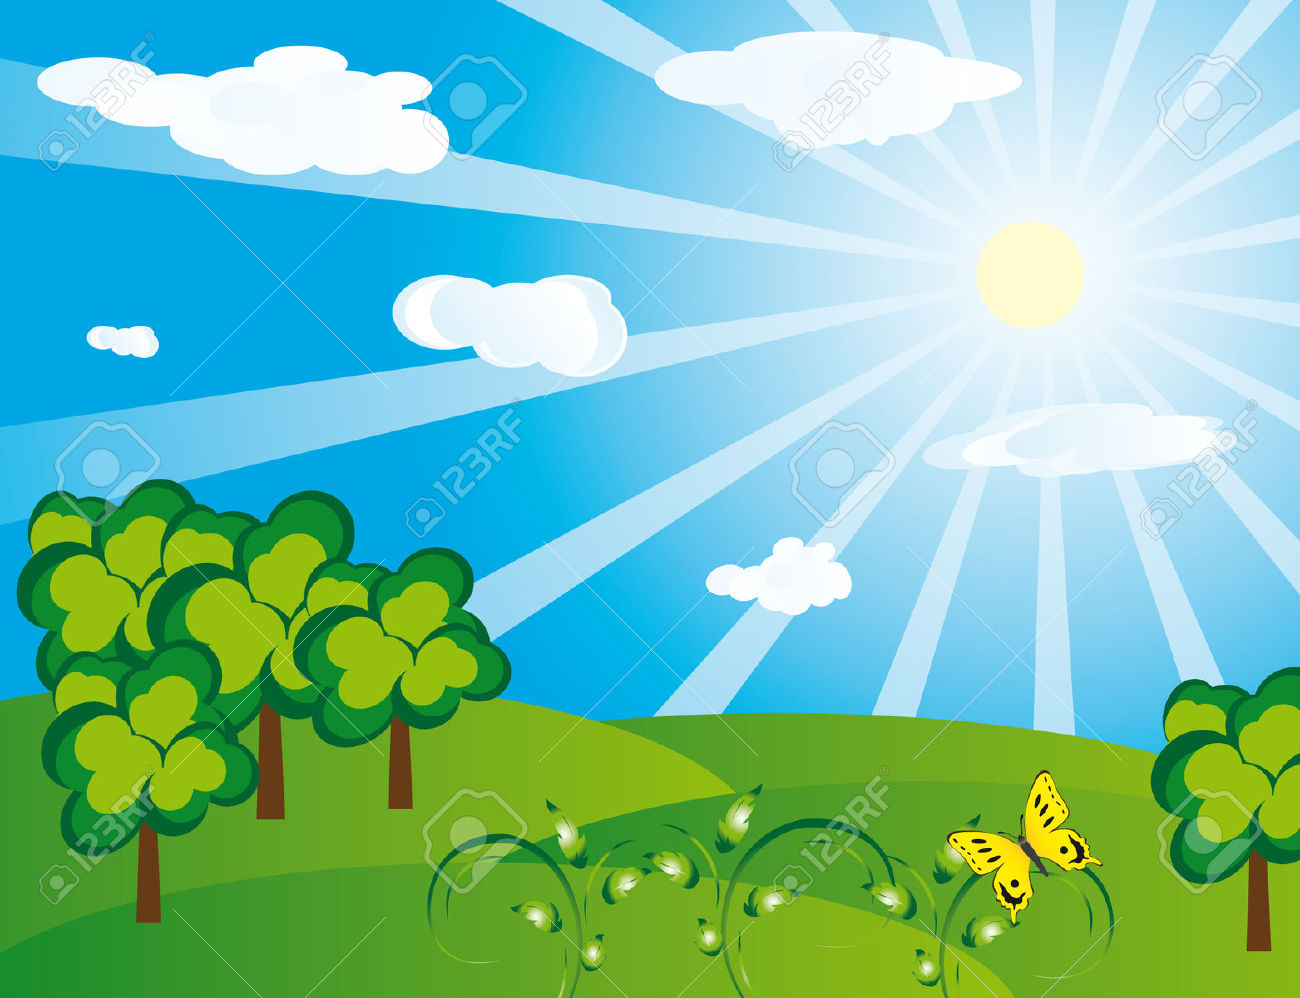 Green Landscape On A Sunny Day. Vector Illustration Royalty Free.